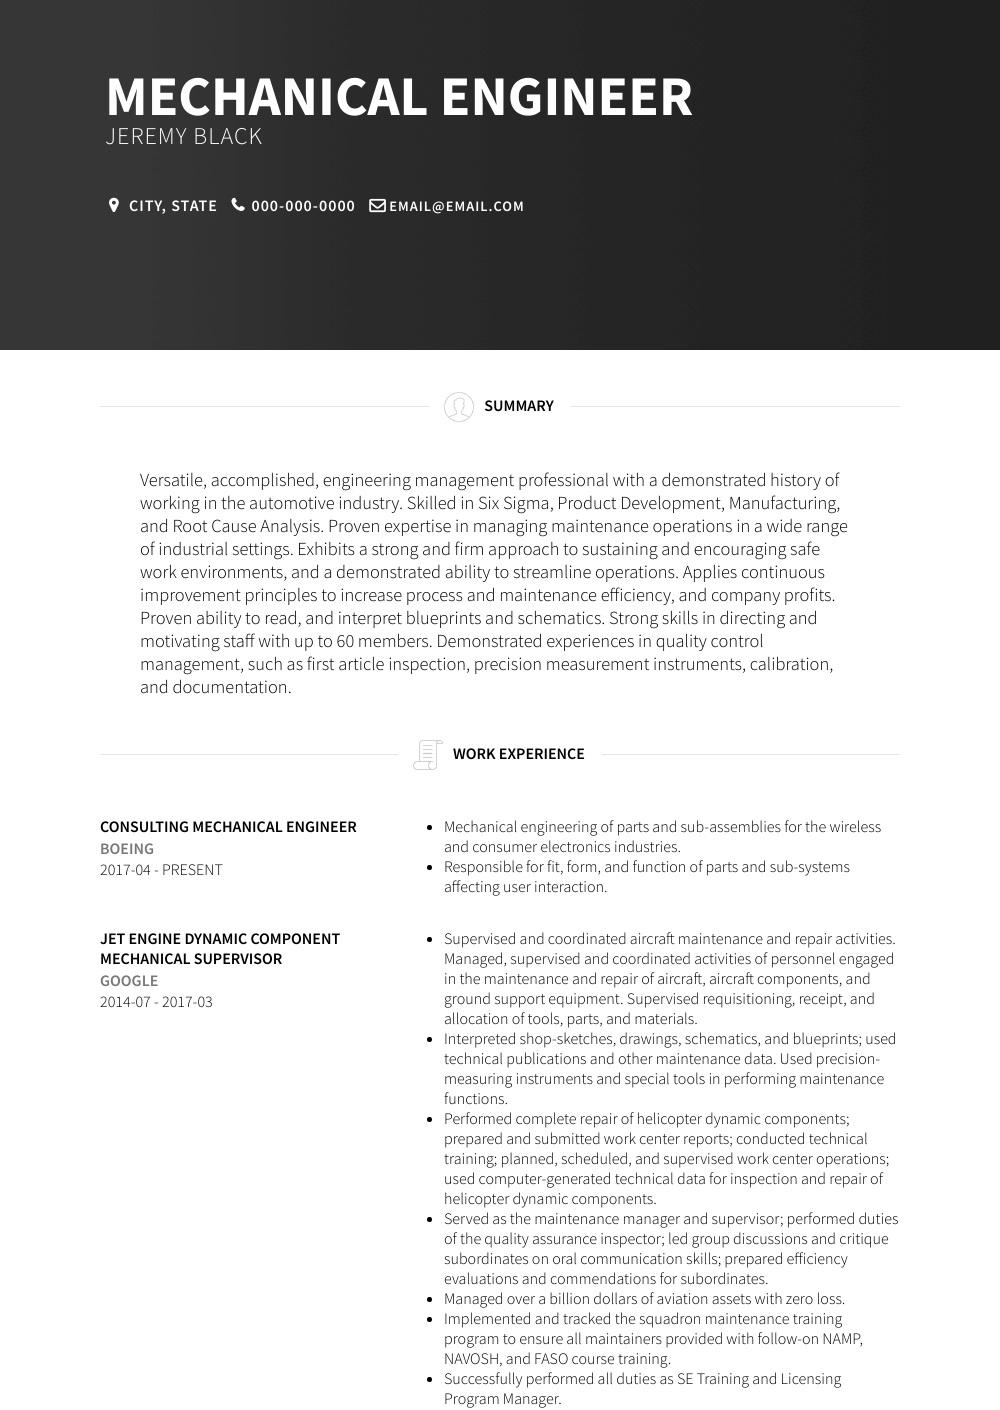 Consulting Mechanical Engineer Resume Sample and Template